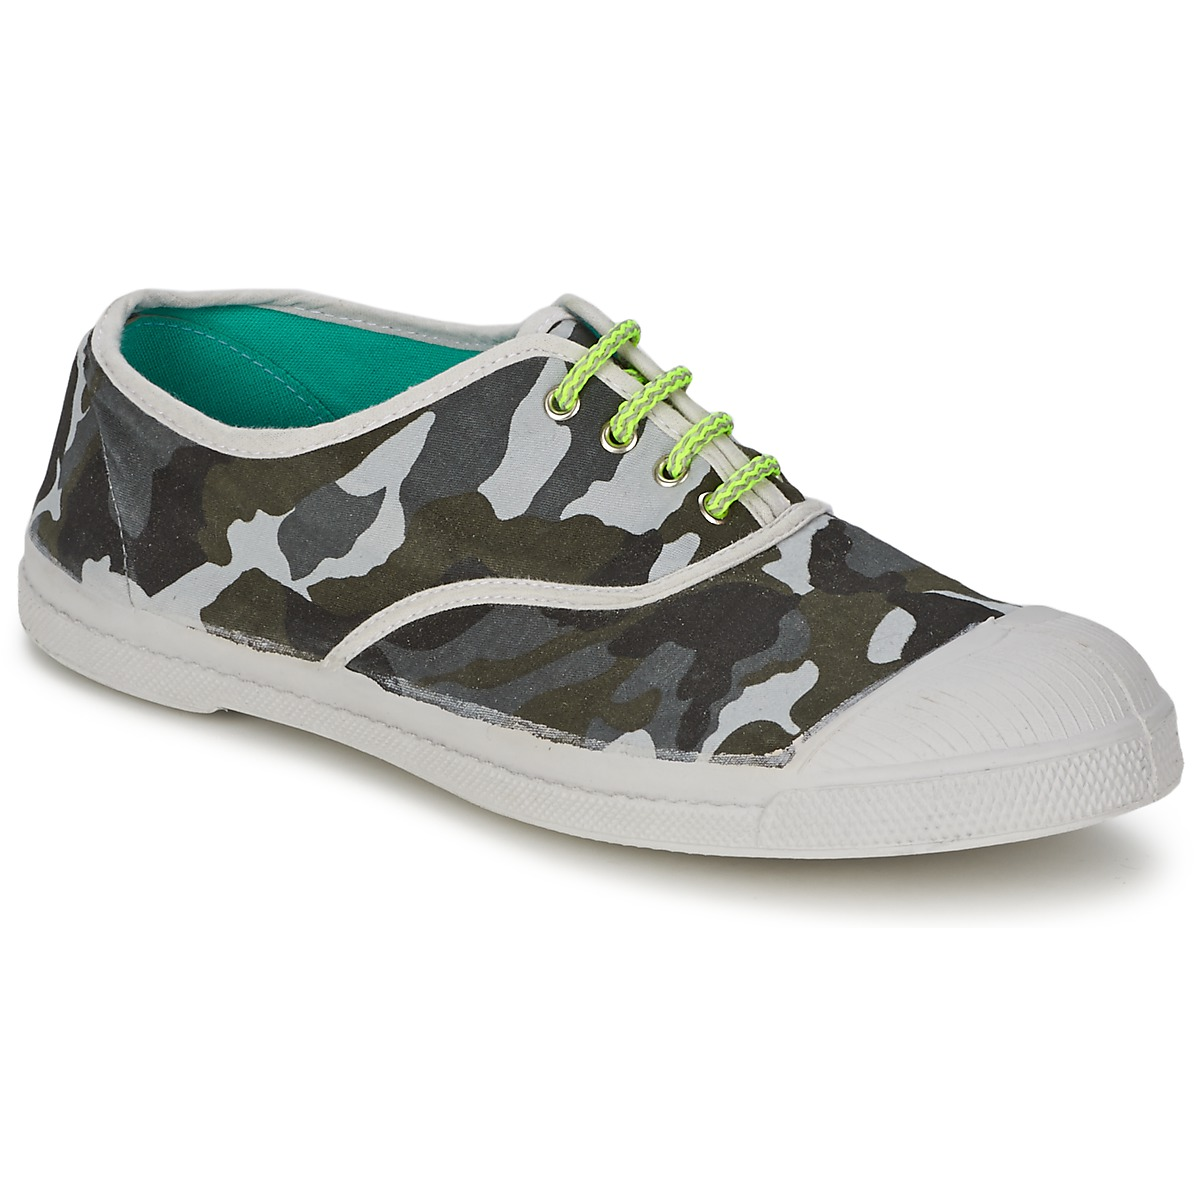 bensimon tennis camofluo camouflage chaussure pas cher avec chaussures baskets. Black Bedroom Furniture Sets. Home Design Ideas